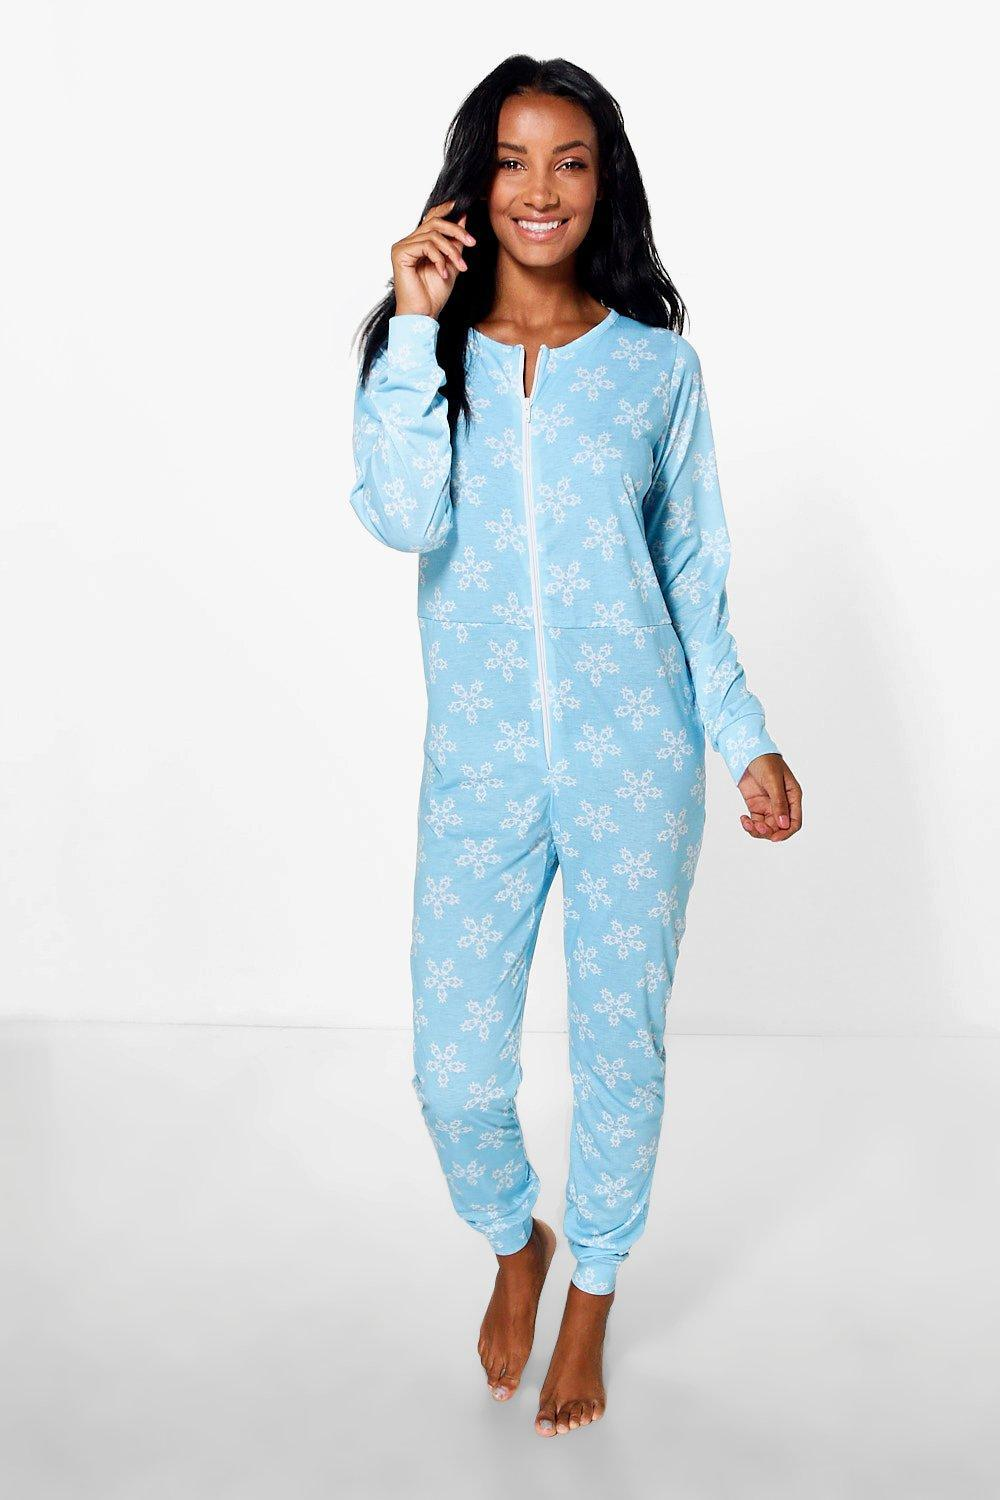 Onesies & Loungewear Say 'yes!' to Saturday nights in with our stylish and super comfy onesie and nightwear range. Beauty sleep begins with the perfect pair of pajamas so we've got the pajama sets to kick back in for all-out comfort.